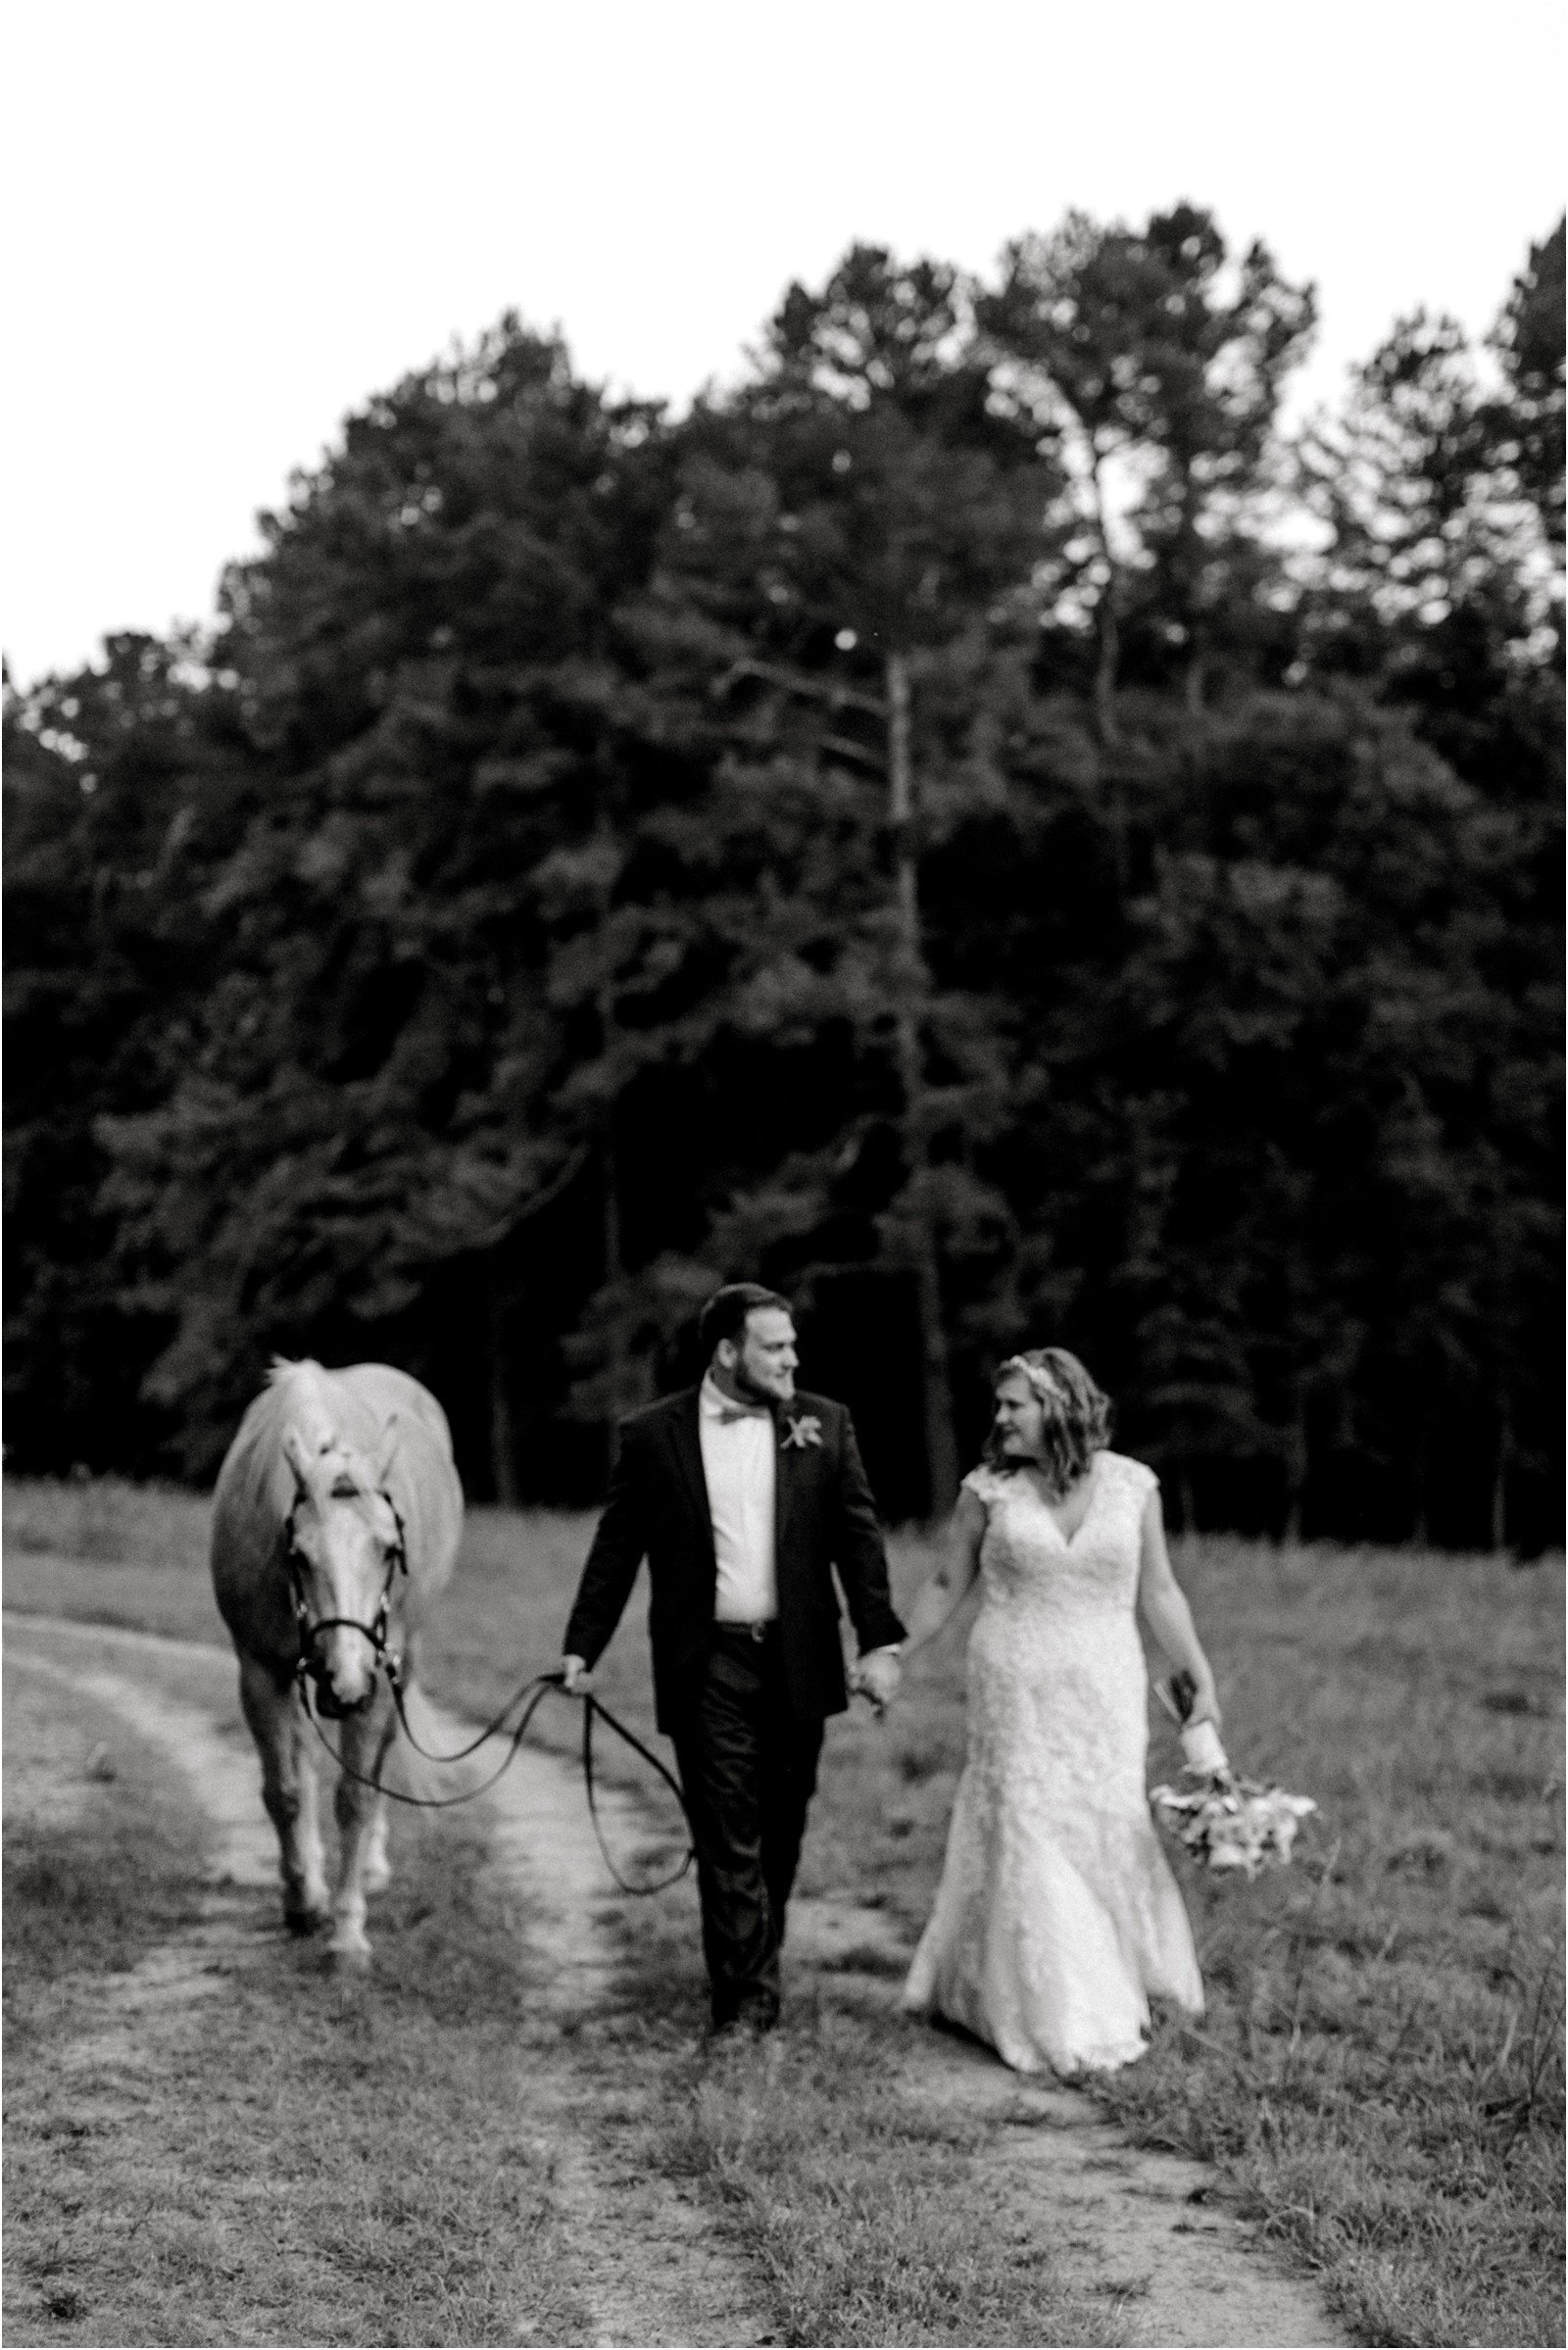 Chapel in the Woods Rustic Country Vintage Wedding Raleigh NC Plume Events Andrew & Tianna Photography-26